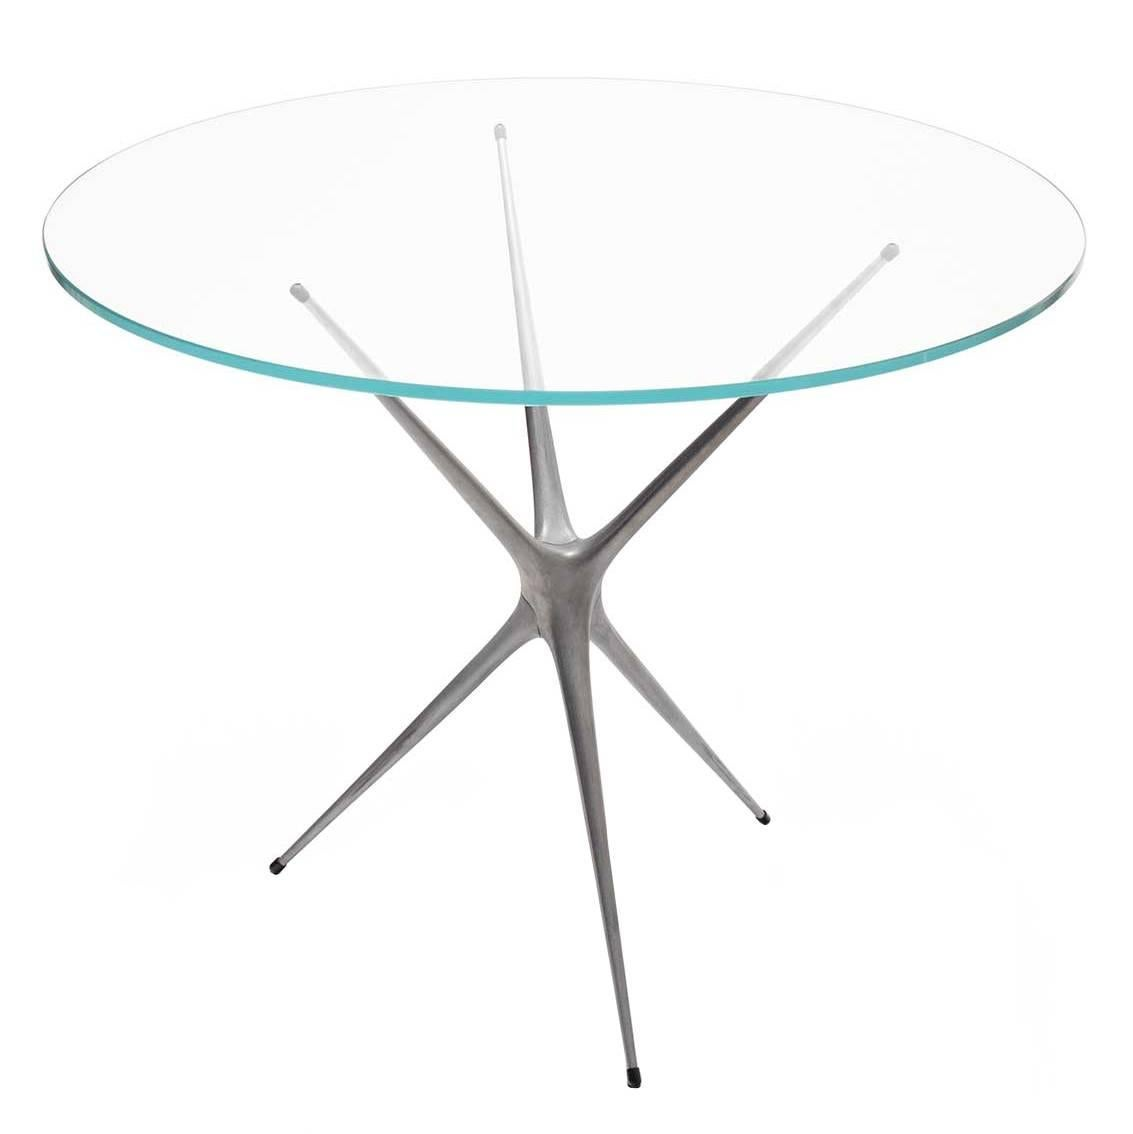 Supernova, Recycled Cast Aluminum Contemporary Table Leg in Raw by Made in Ratio